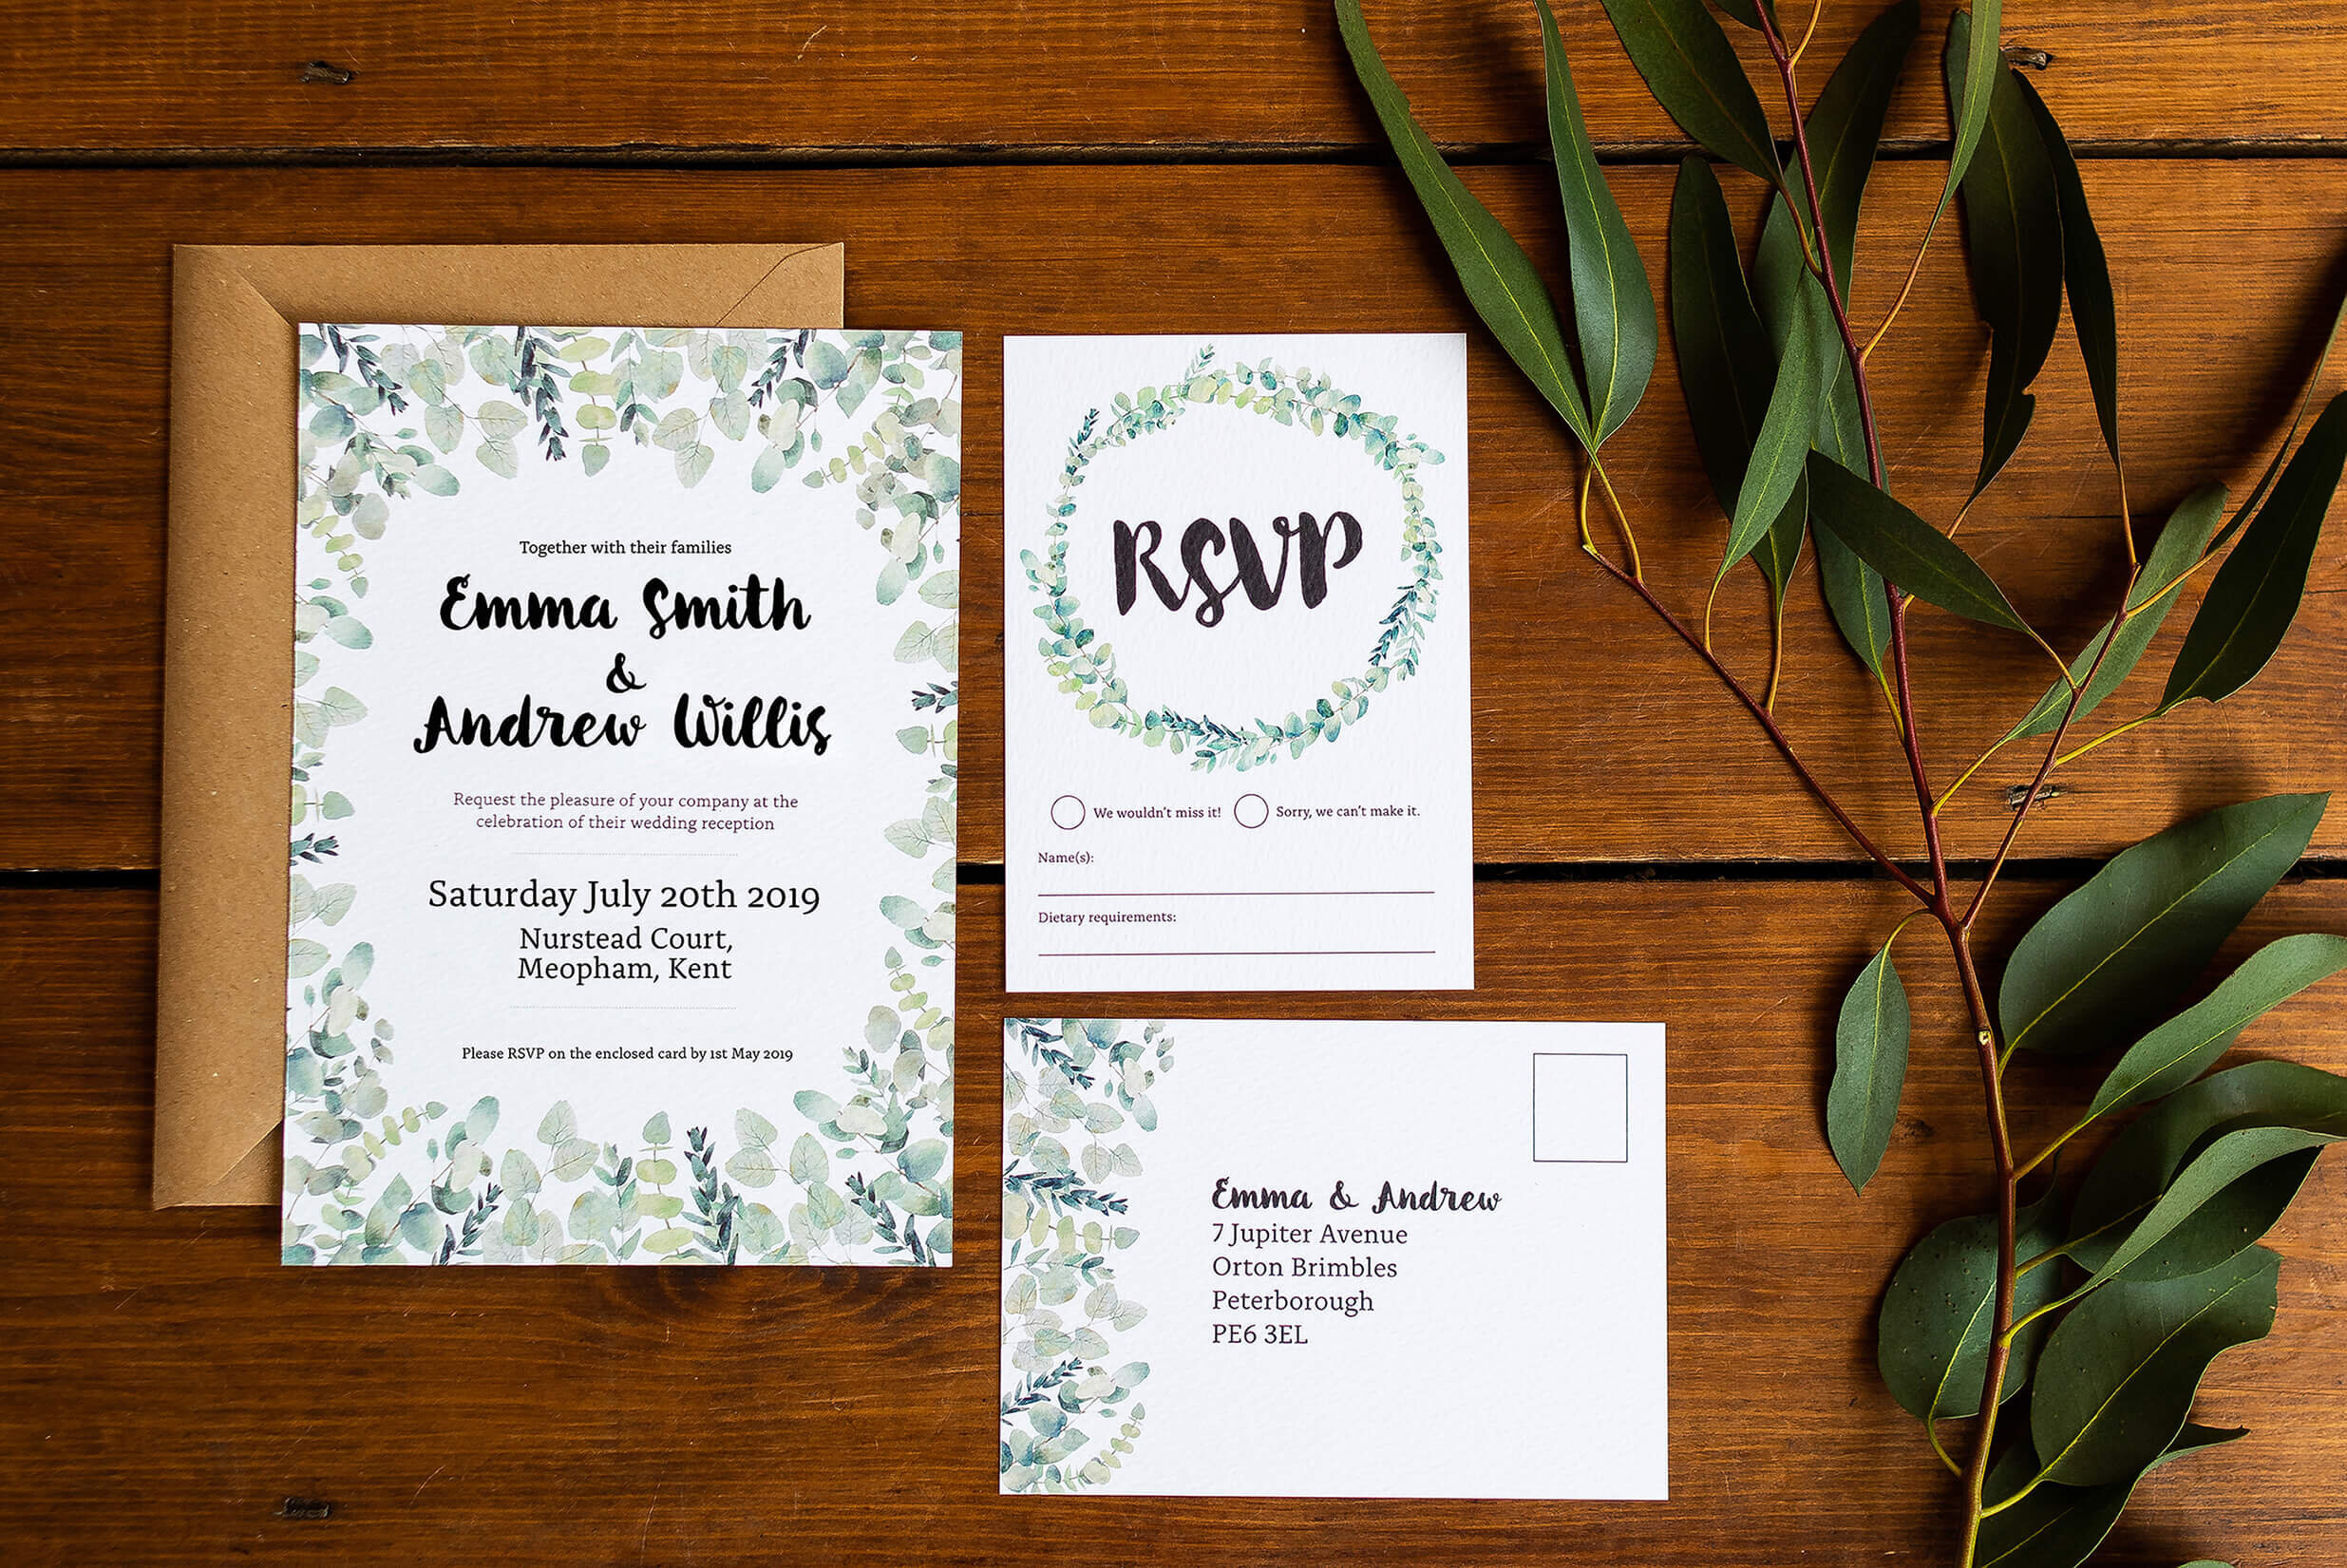 Design By Emily Rustic Eucalyptus Wedding Invitation with Kraft Brown Envelope and RSVP Postcard.